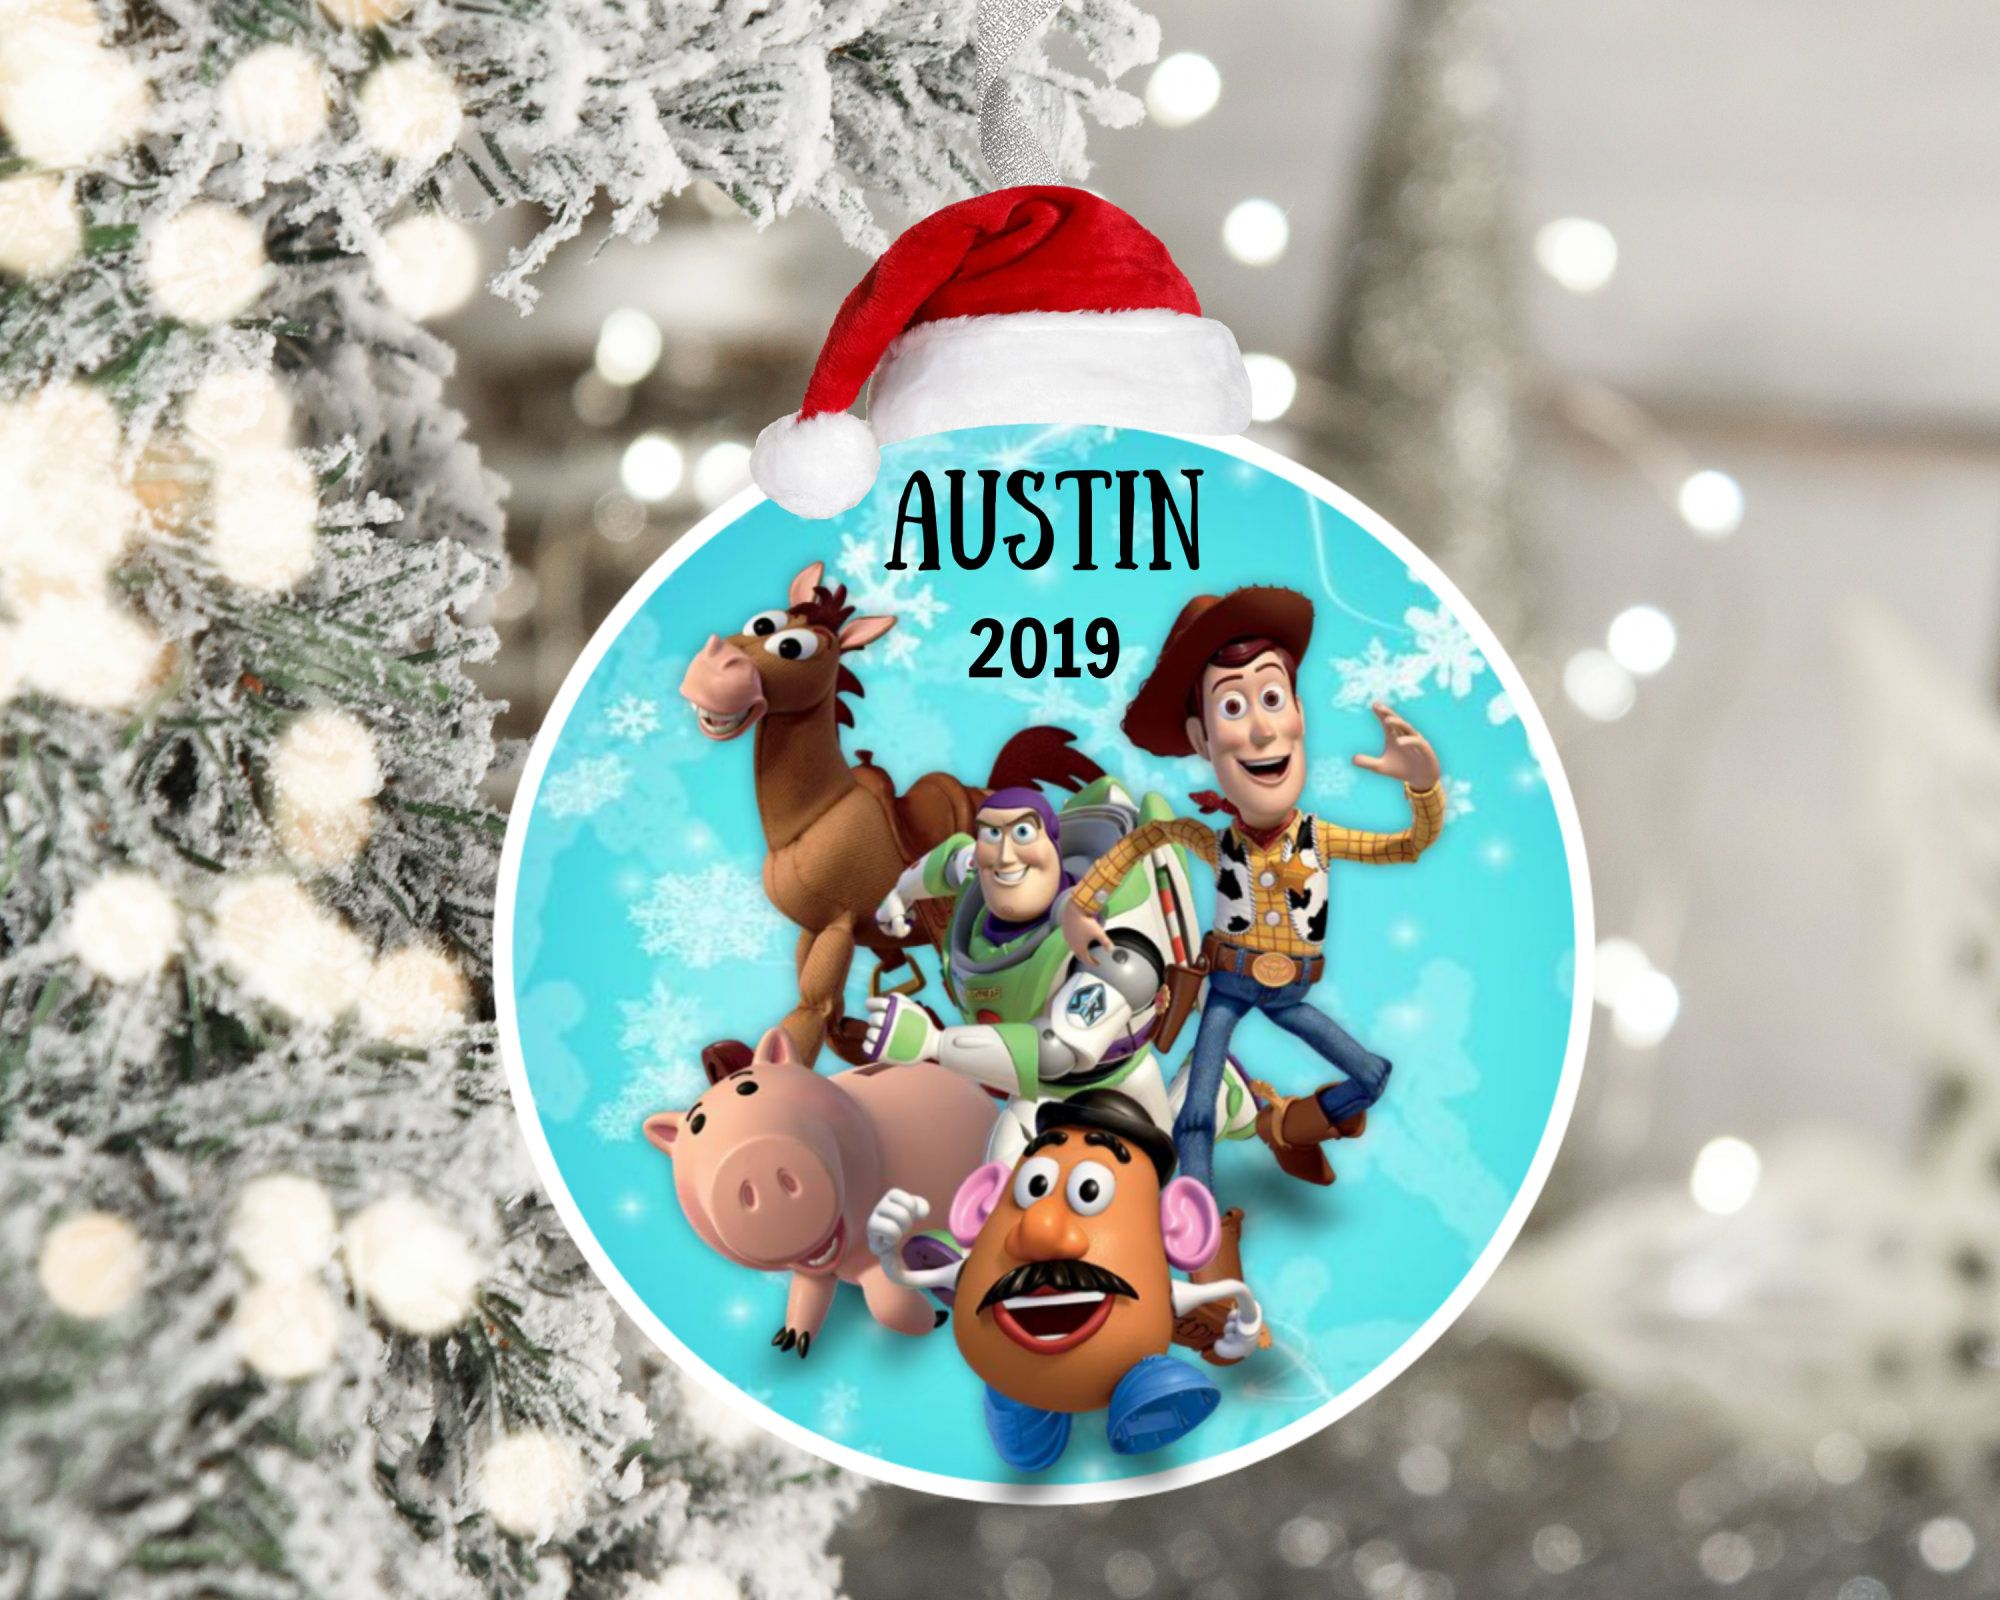 Toy Story Ornament 2019 Personalized Christmas Stocking Stuffer Gift Disney Gift Kids Holiday Gifts Christmas Stockings Personalized Christmas Gifts For Kids